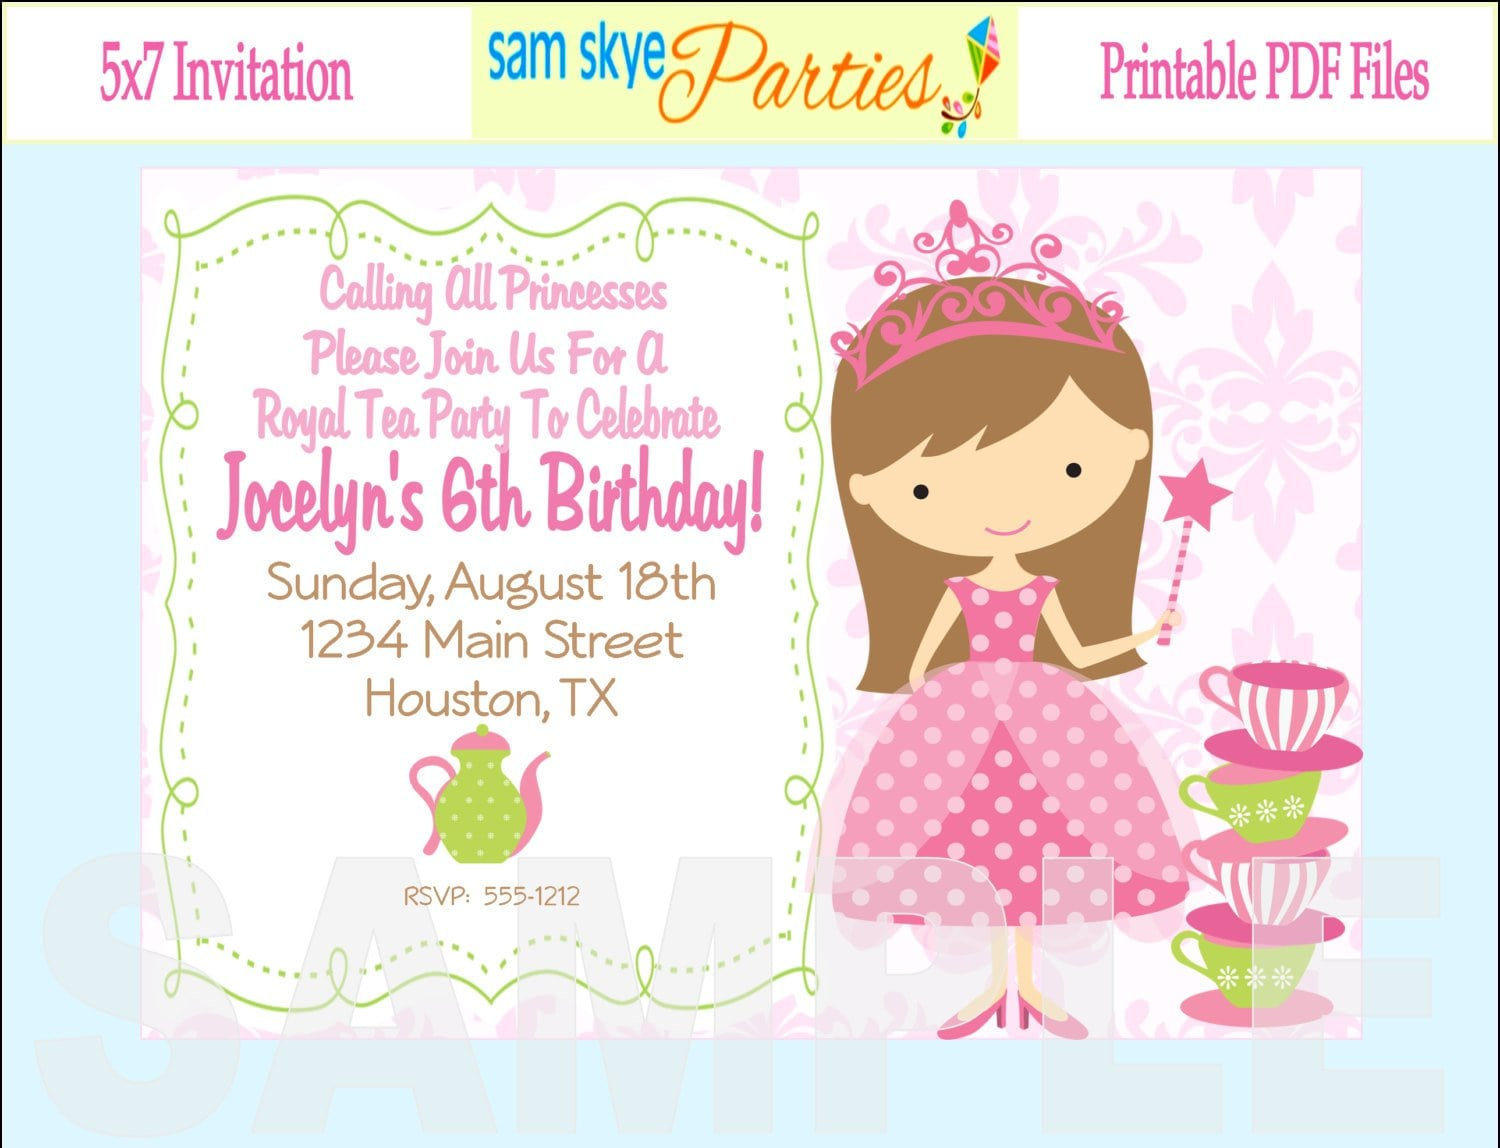 party invitation templates business party invitation company party princess birthday party invitation wording na2fwpo7